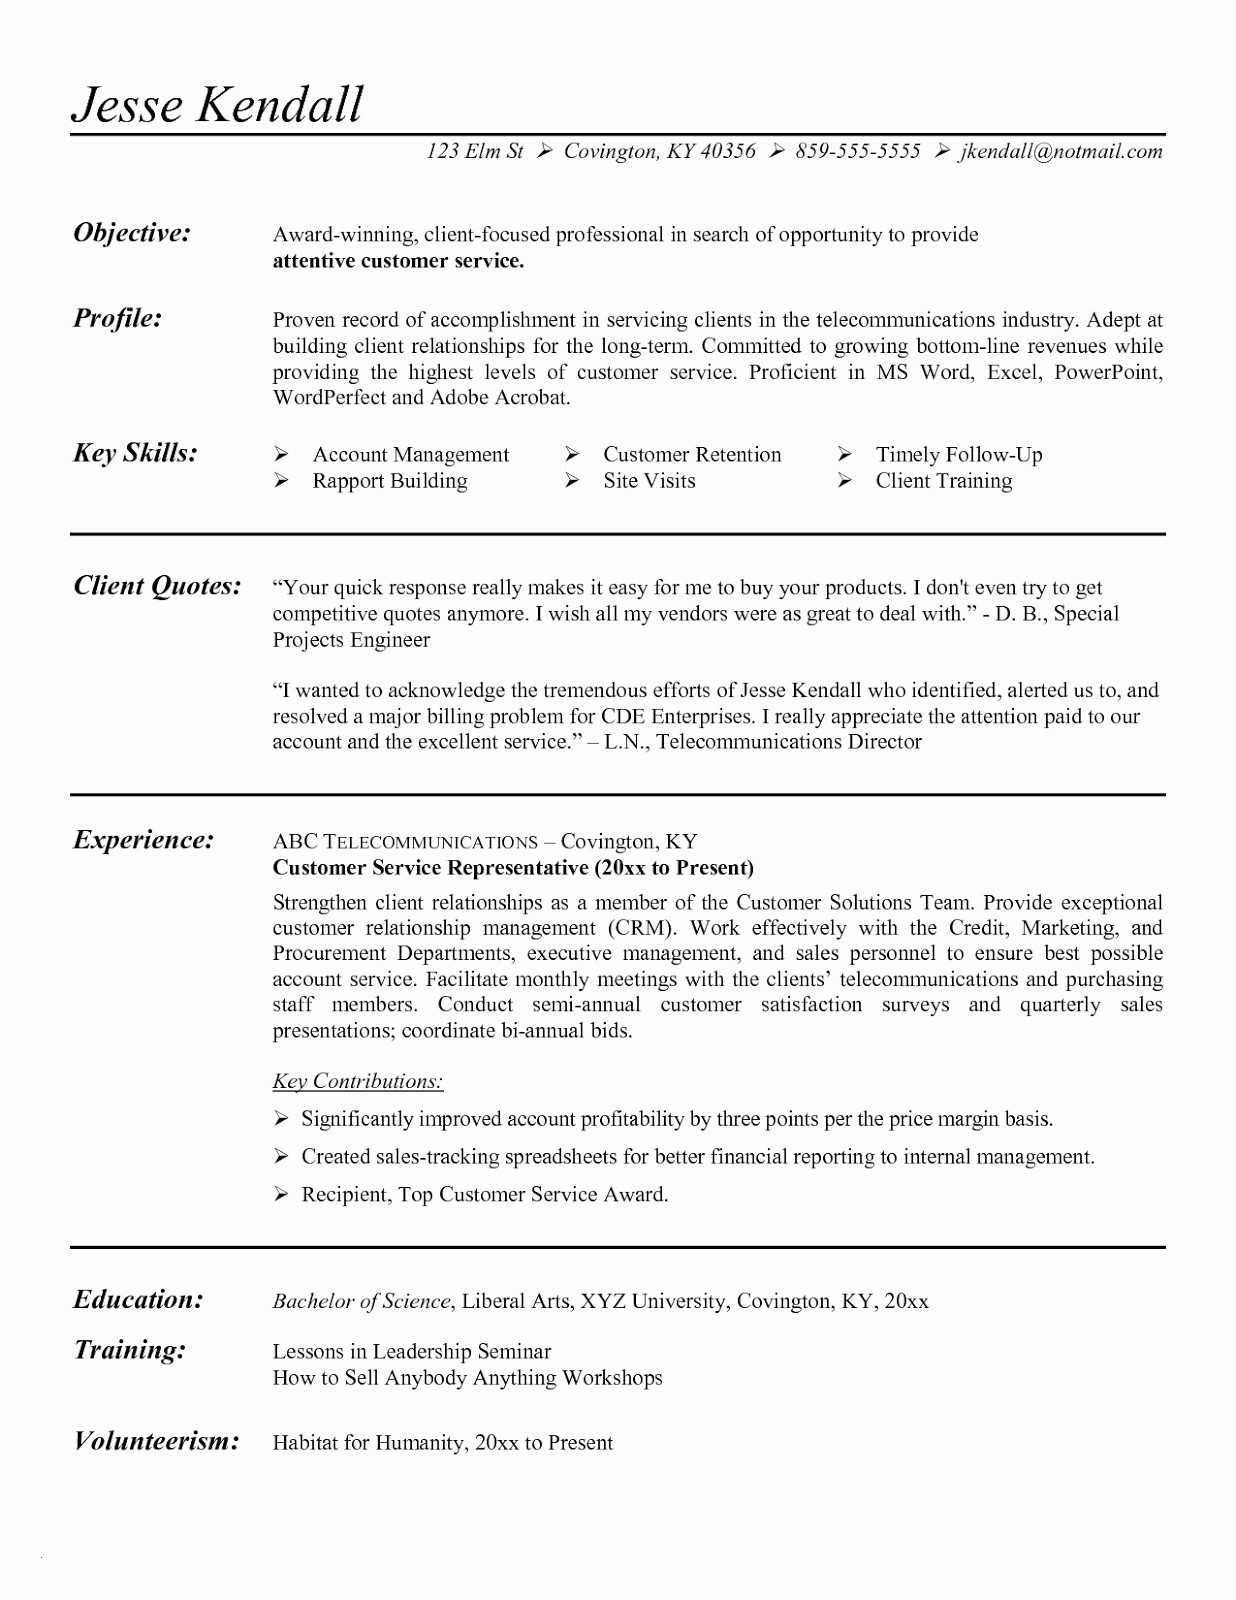 Pharmacist Resume Template - Pharmacy Technician Job Duties Resume Example Pharmacist Resume